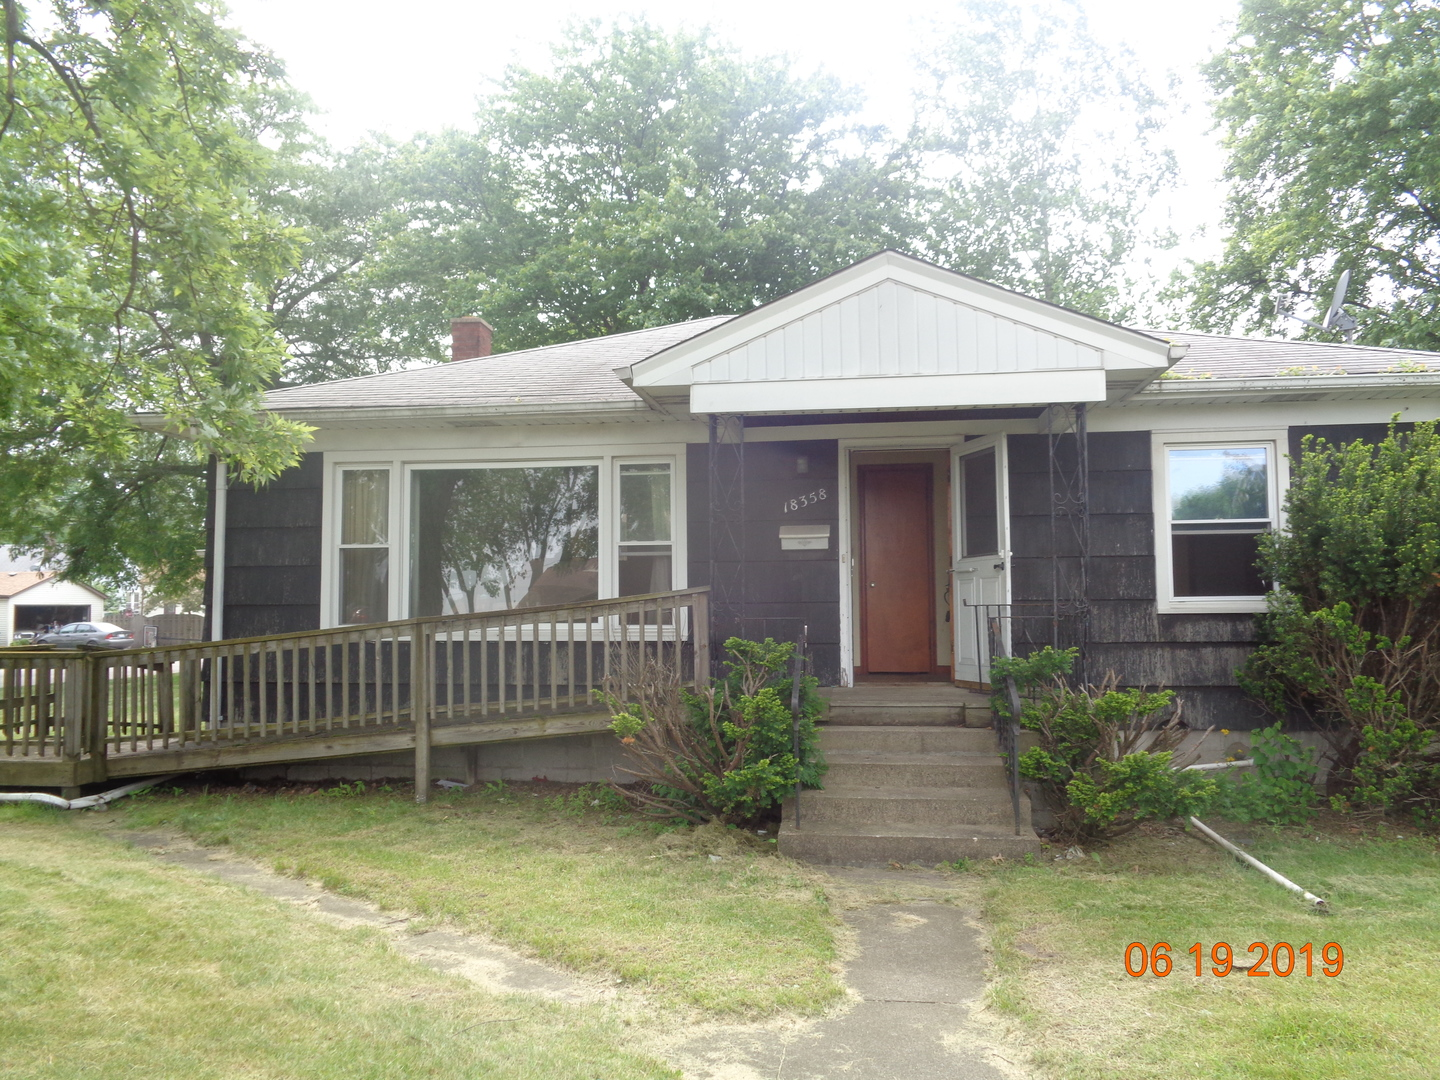 SINGLE FAMILY HOME NEEDS FULL REHAB. SOLD AS-IS AND READY FOR A NEW FAMILY.   NOT BANK OWNED AND NOT A SHORT SALE, OWNERS ARE LOCAL AND MOTIVATED.  THIS HOME IS BEING SOLD AS-IS, SO PLEASE INSPECT PRIOR TO SUBMITTING AN OFFER.  PLEASE NOTE: 0% TAX PRORATIONS ARE OFFERED, THE SELLER WILL PAY CURRENT AND ALL PRIOR TAX BUT 0% CREDIT FOR FUTURE BILLS.  SPECIAL WARRANTY DEED AT CLOSING. NO SURVEY.  FOR FASTER RESPONSE PLEASE USE SELLERS CONTRACT, ADDENDUM AND DISCLOSURES UNDER DOCUMENTS.